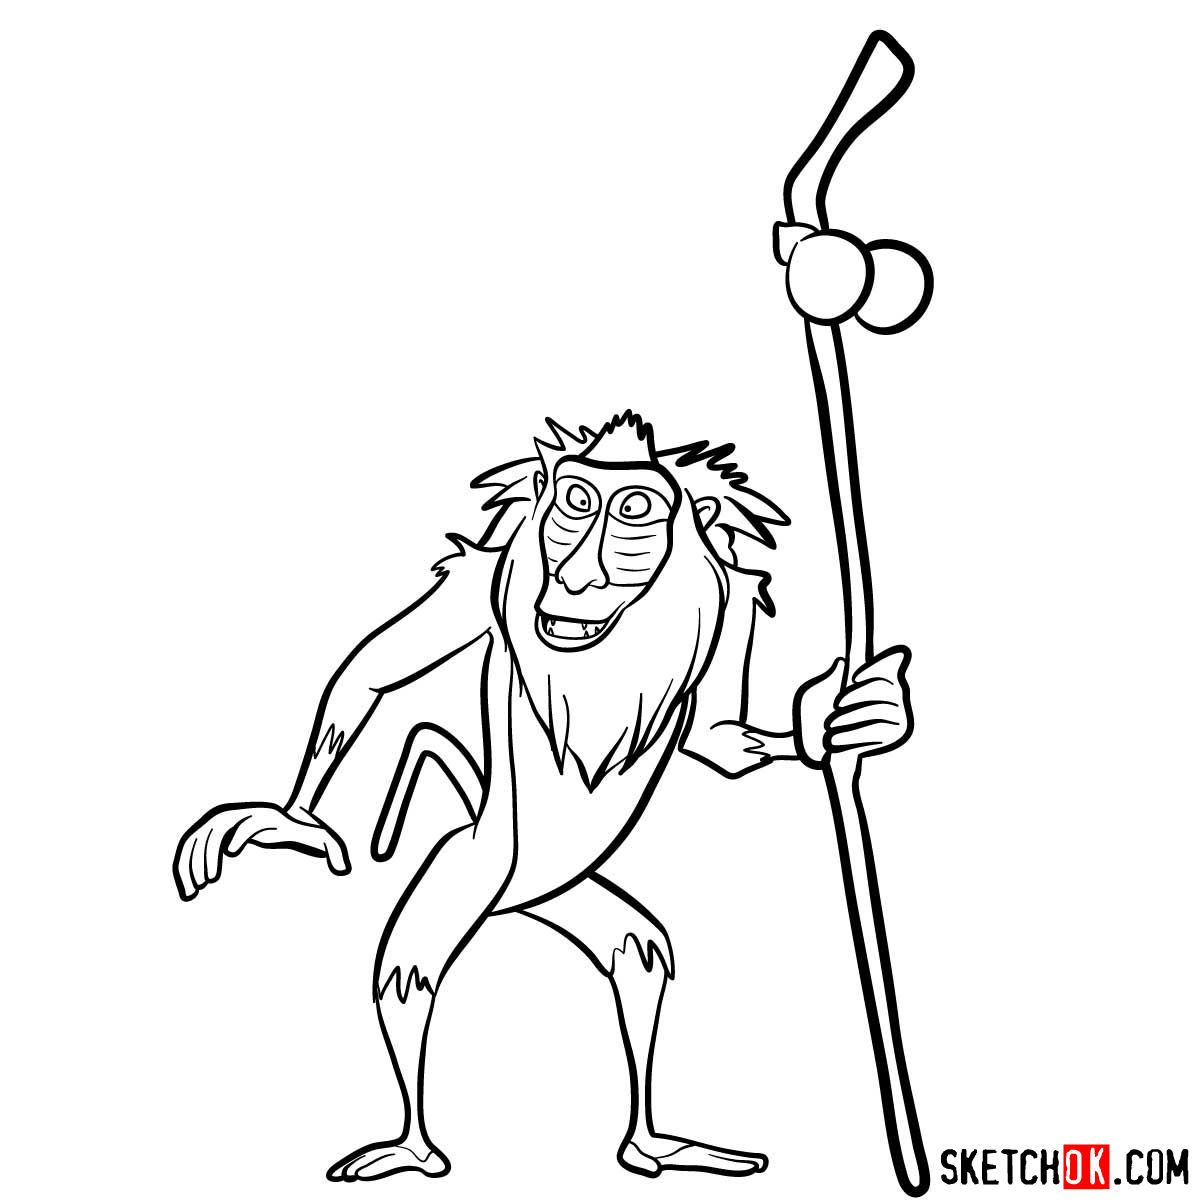 How to draw Rafiki